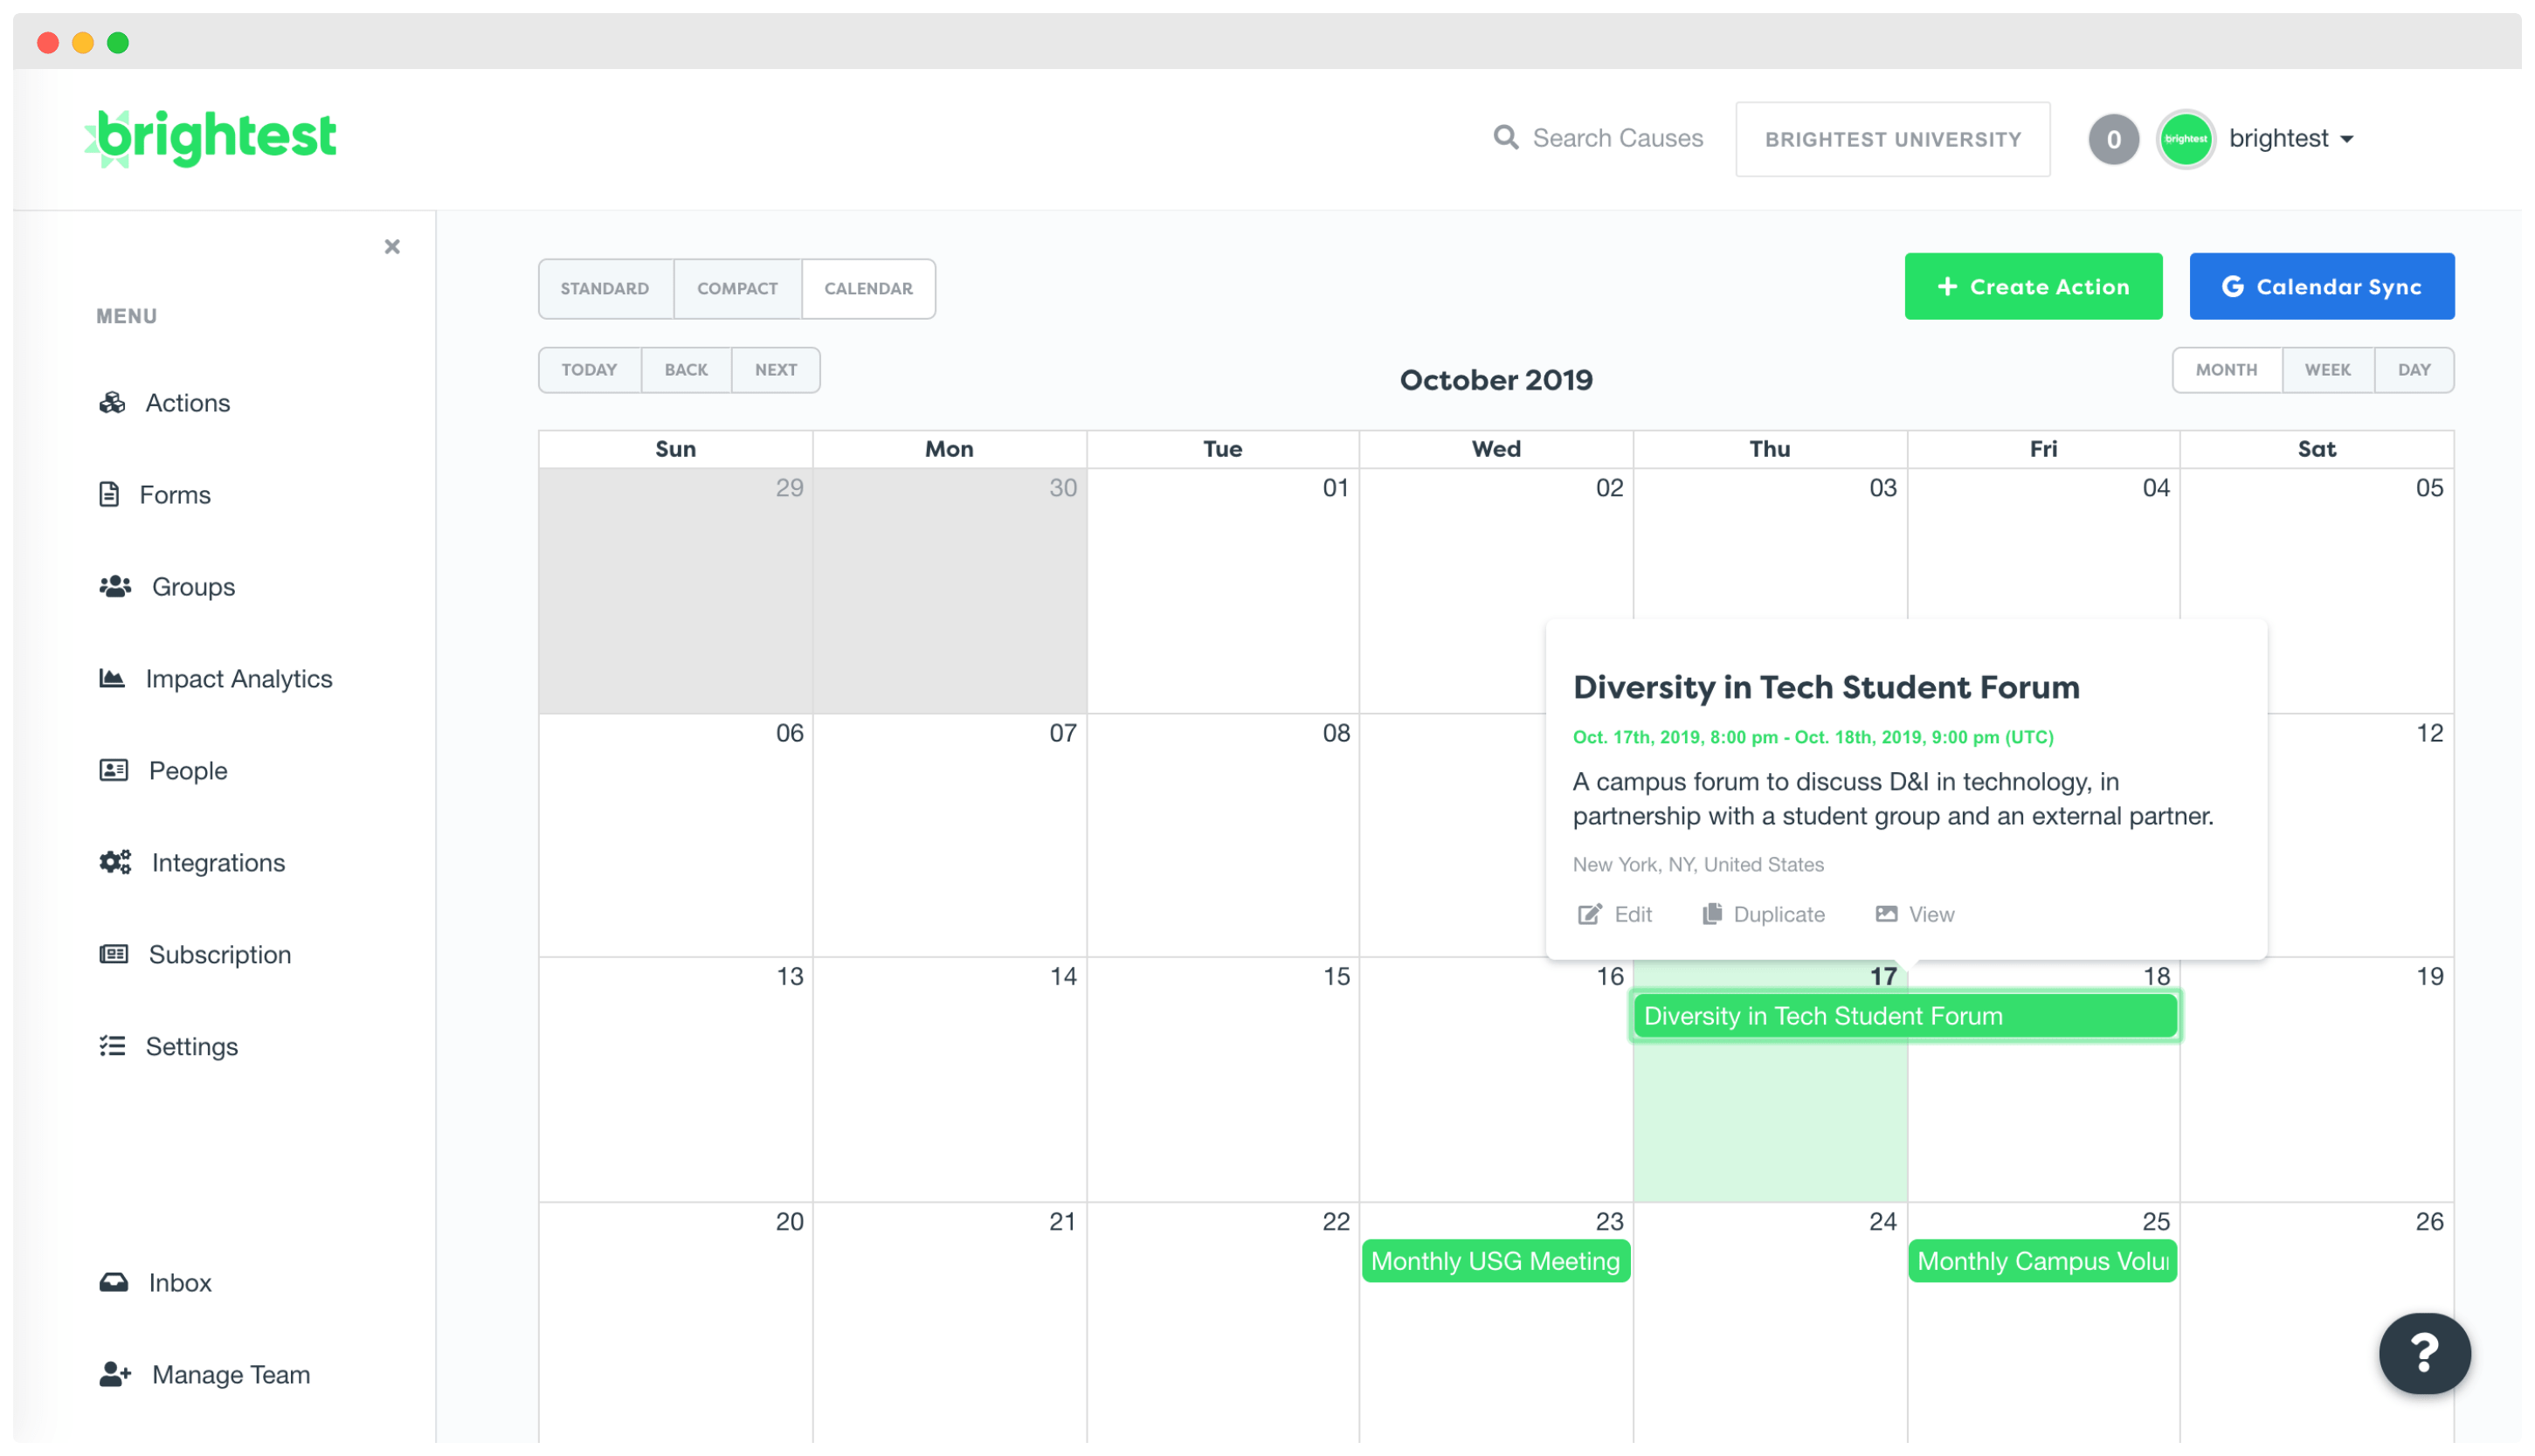 Event Management and Calendar Software